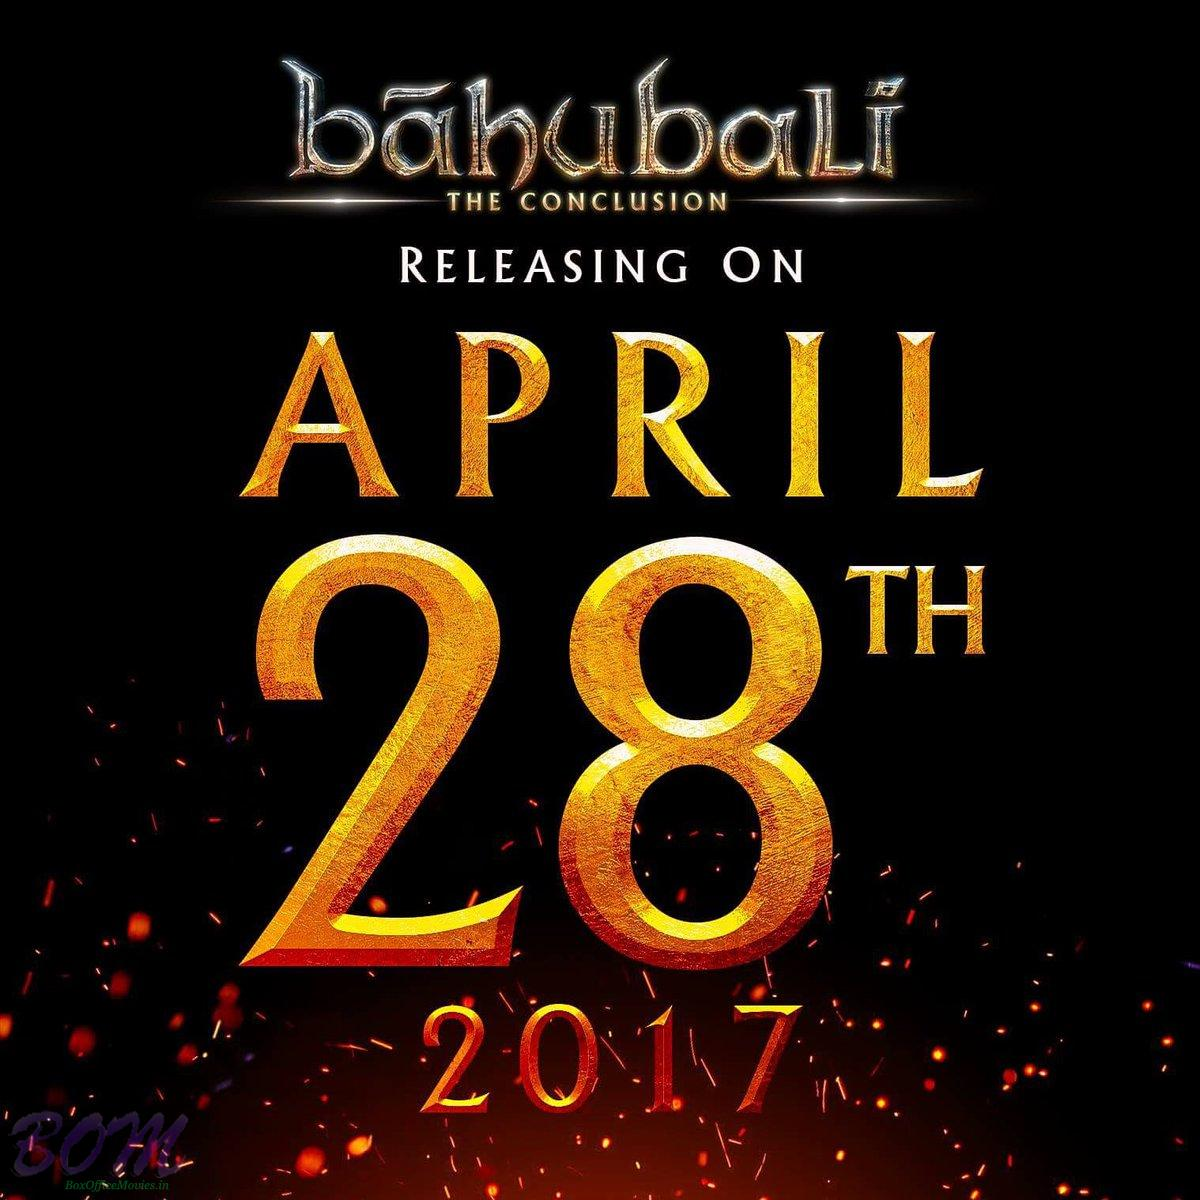 Bahubali 2 set to release on 28 April 2017